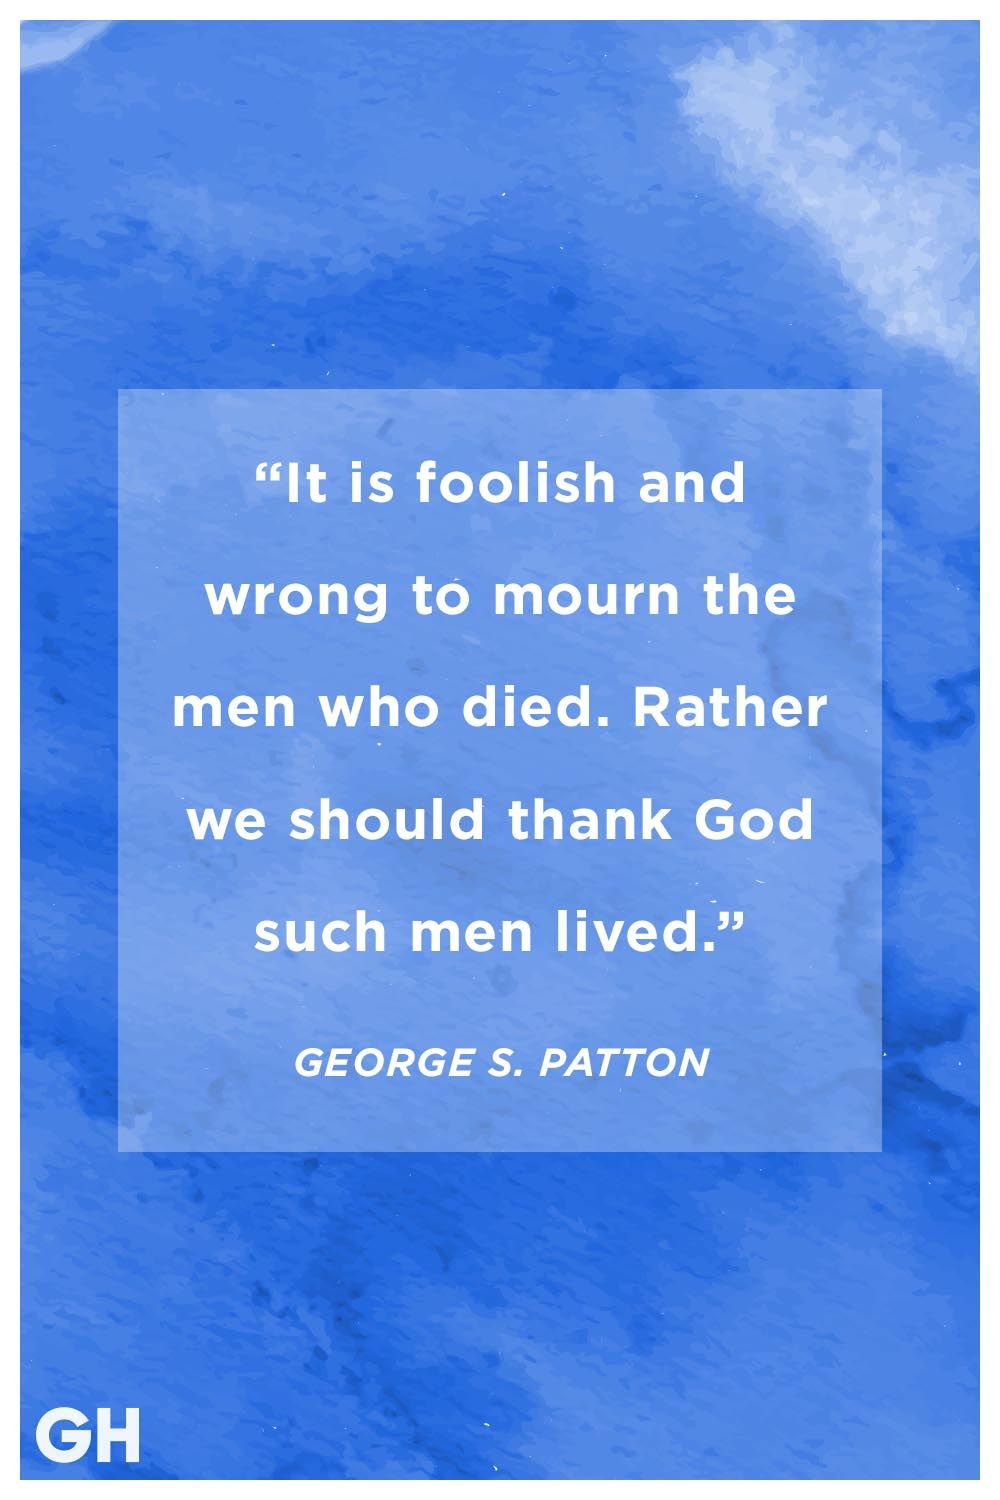 george s patton memorial day quote